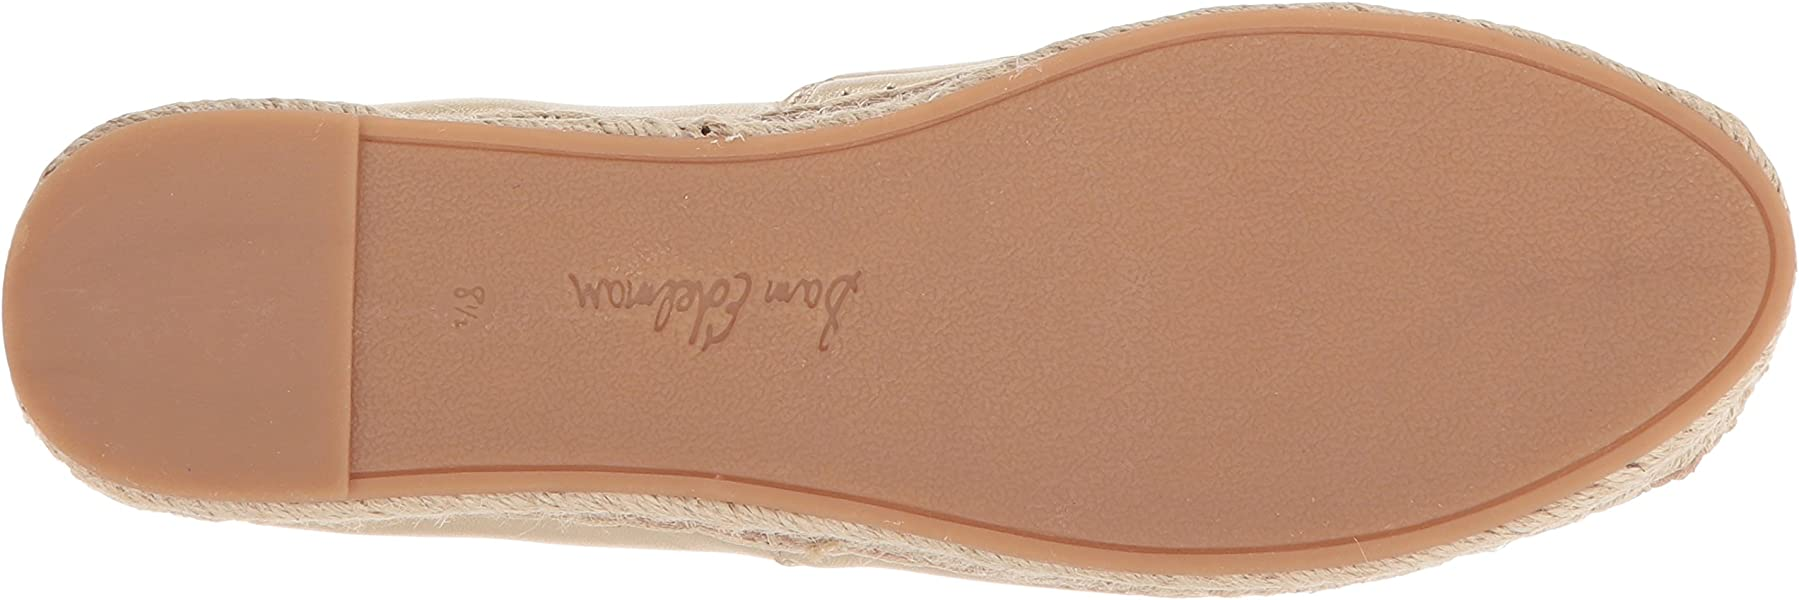 cde3176772a07 Women s Khloe Moccasin. Back. Double-tap to zoom